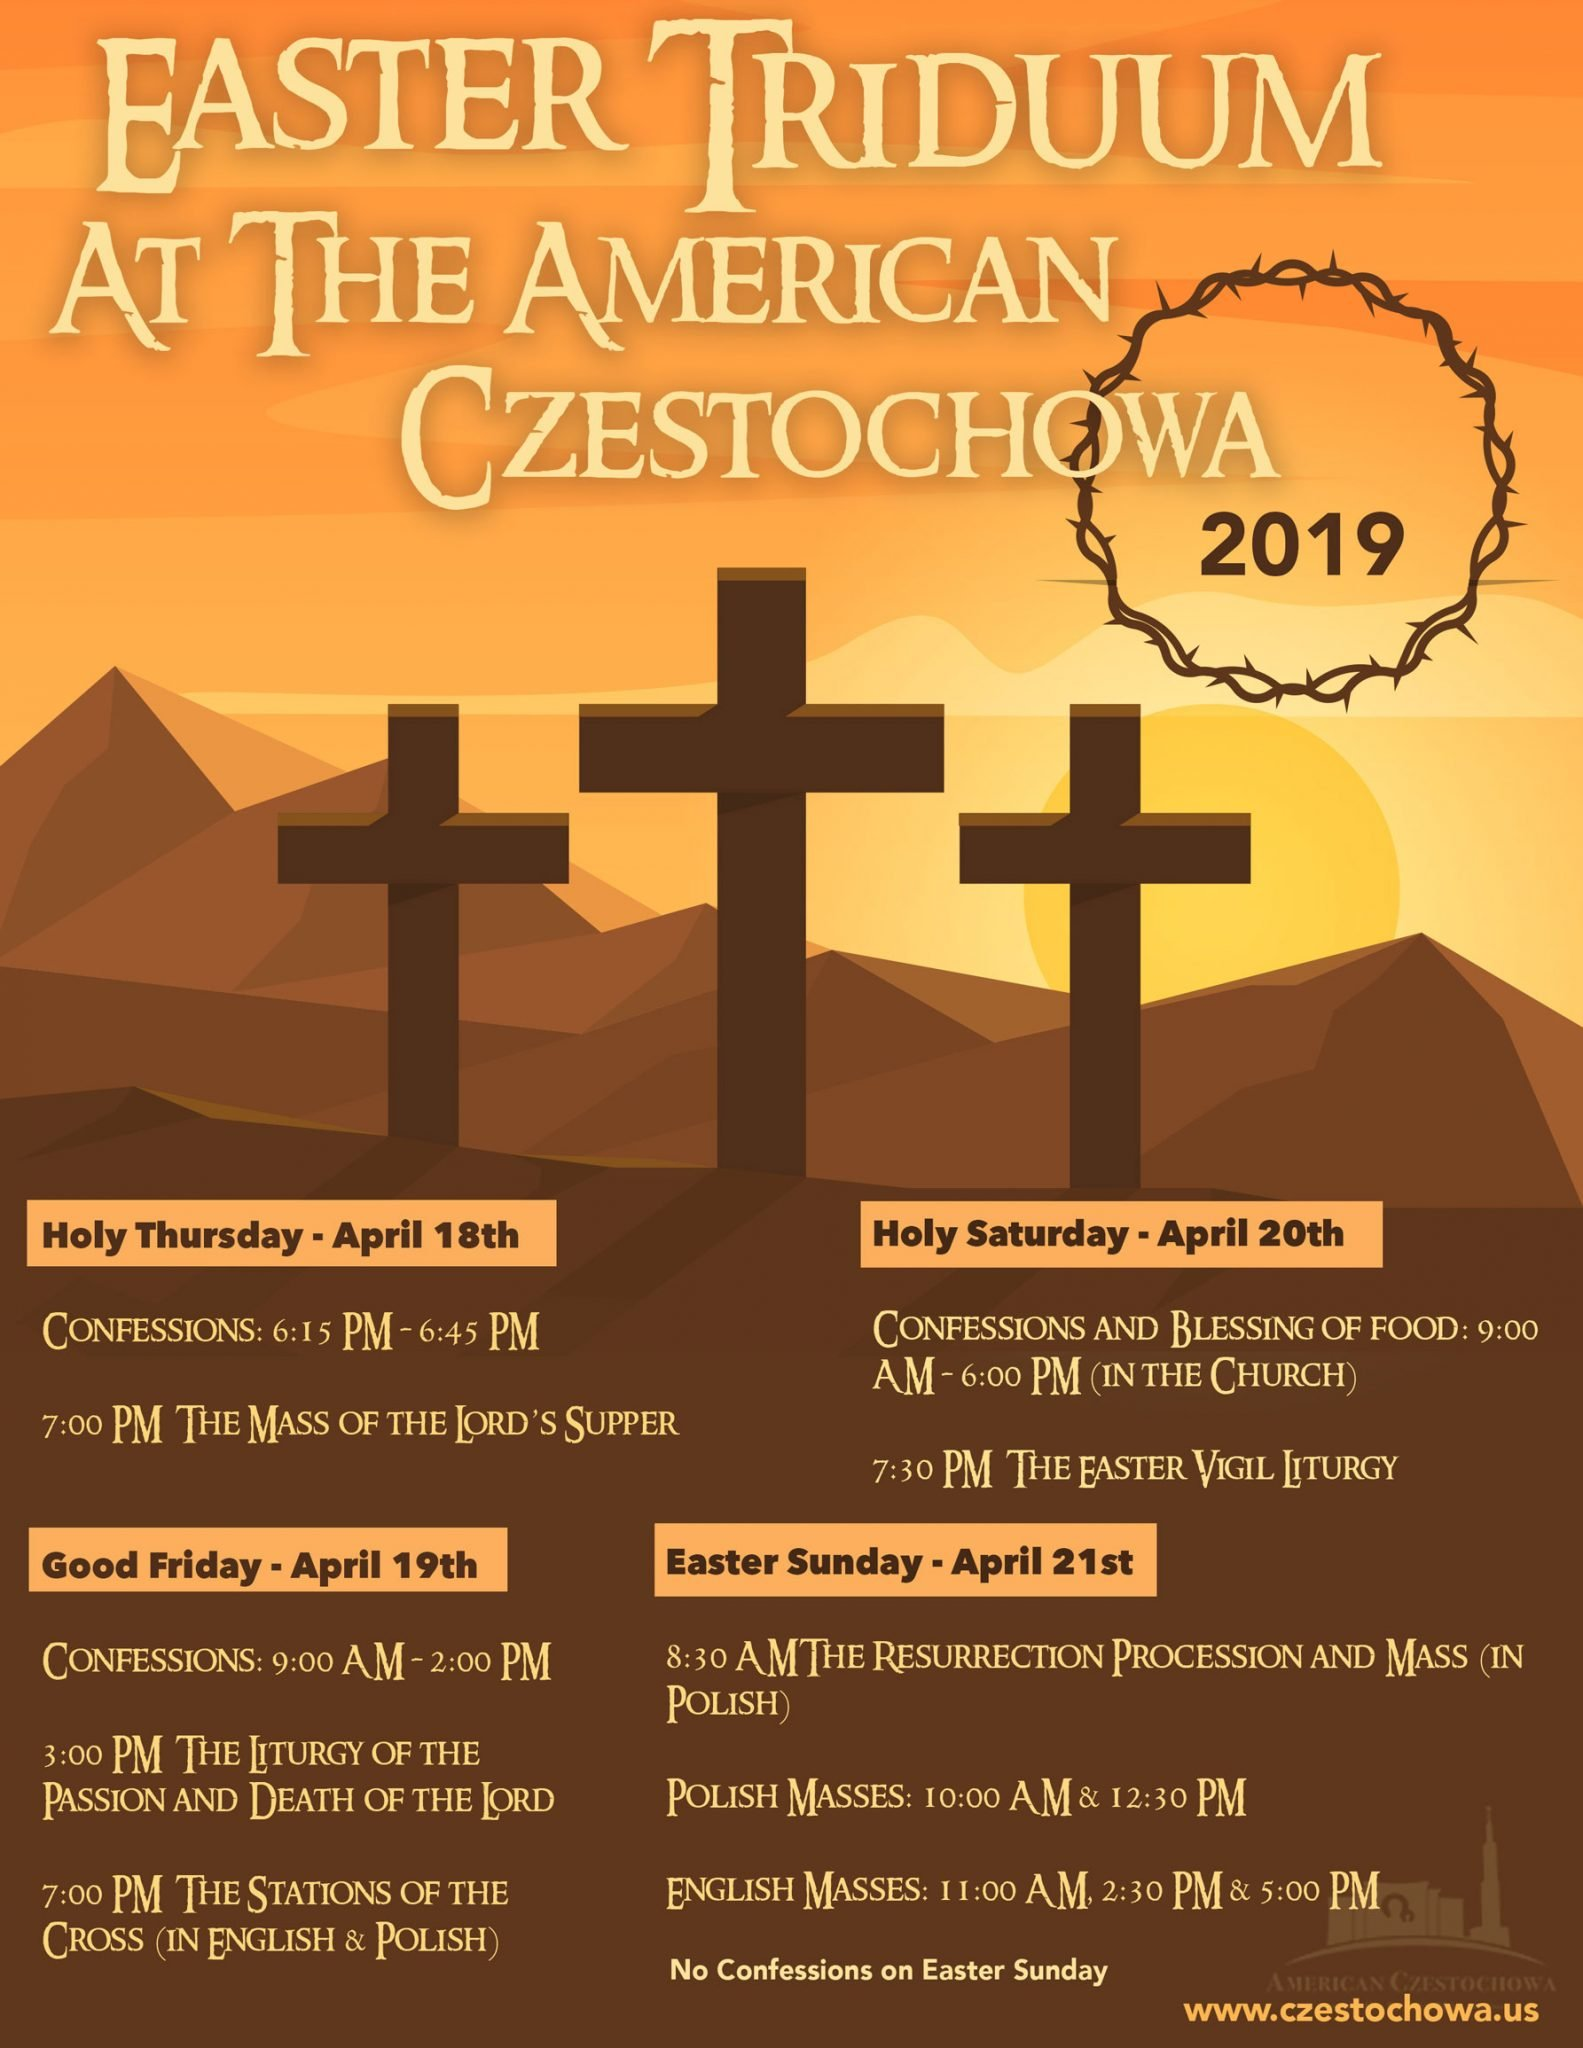 Invitation for the Easter Triduum